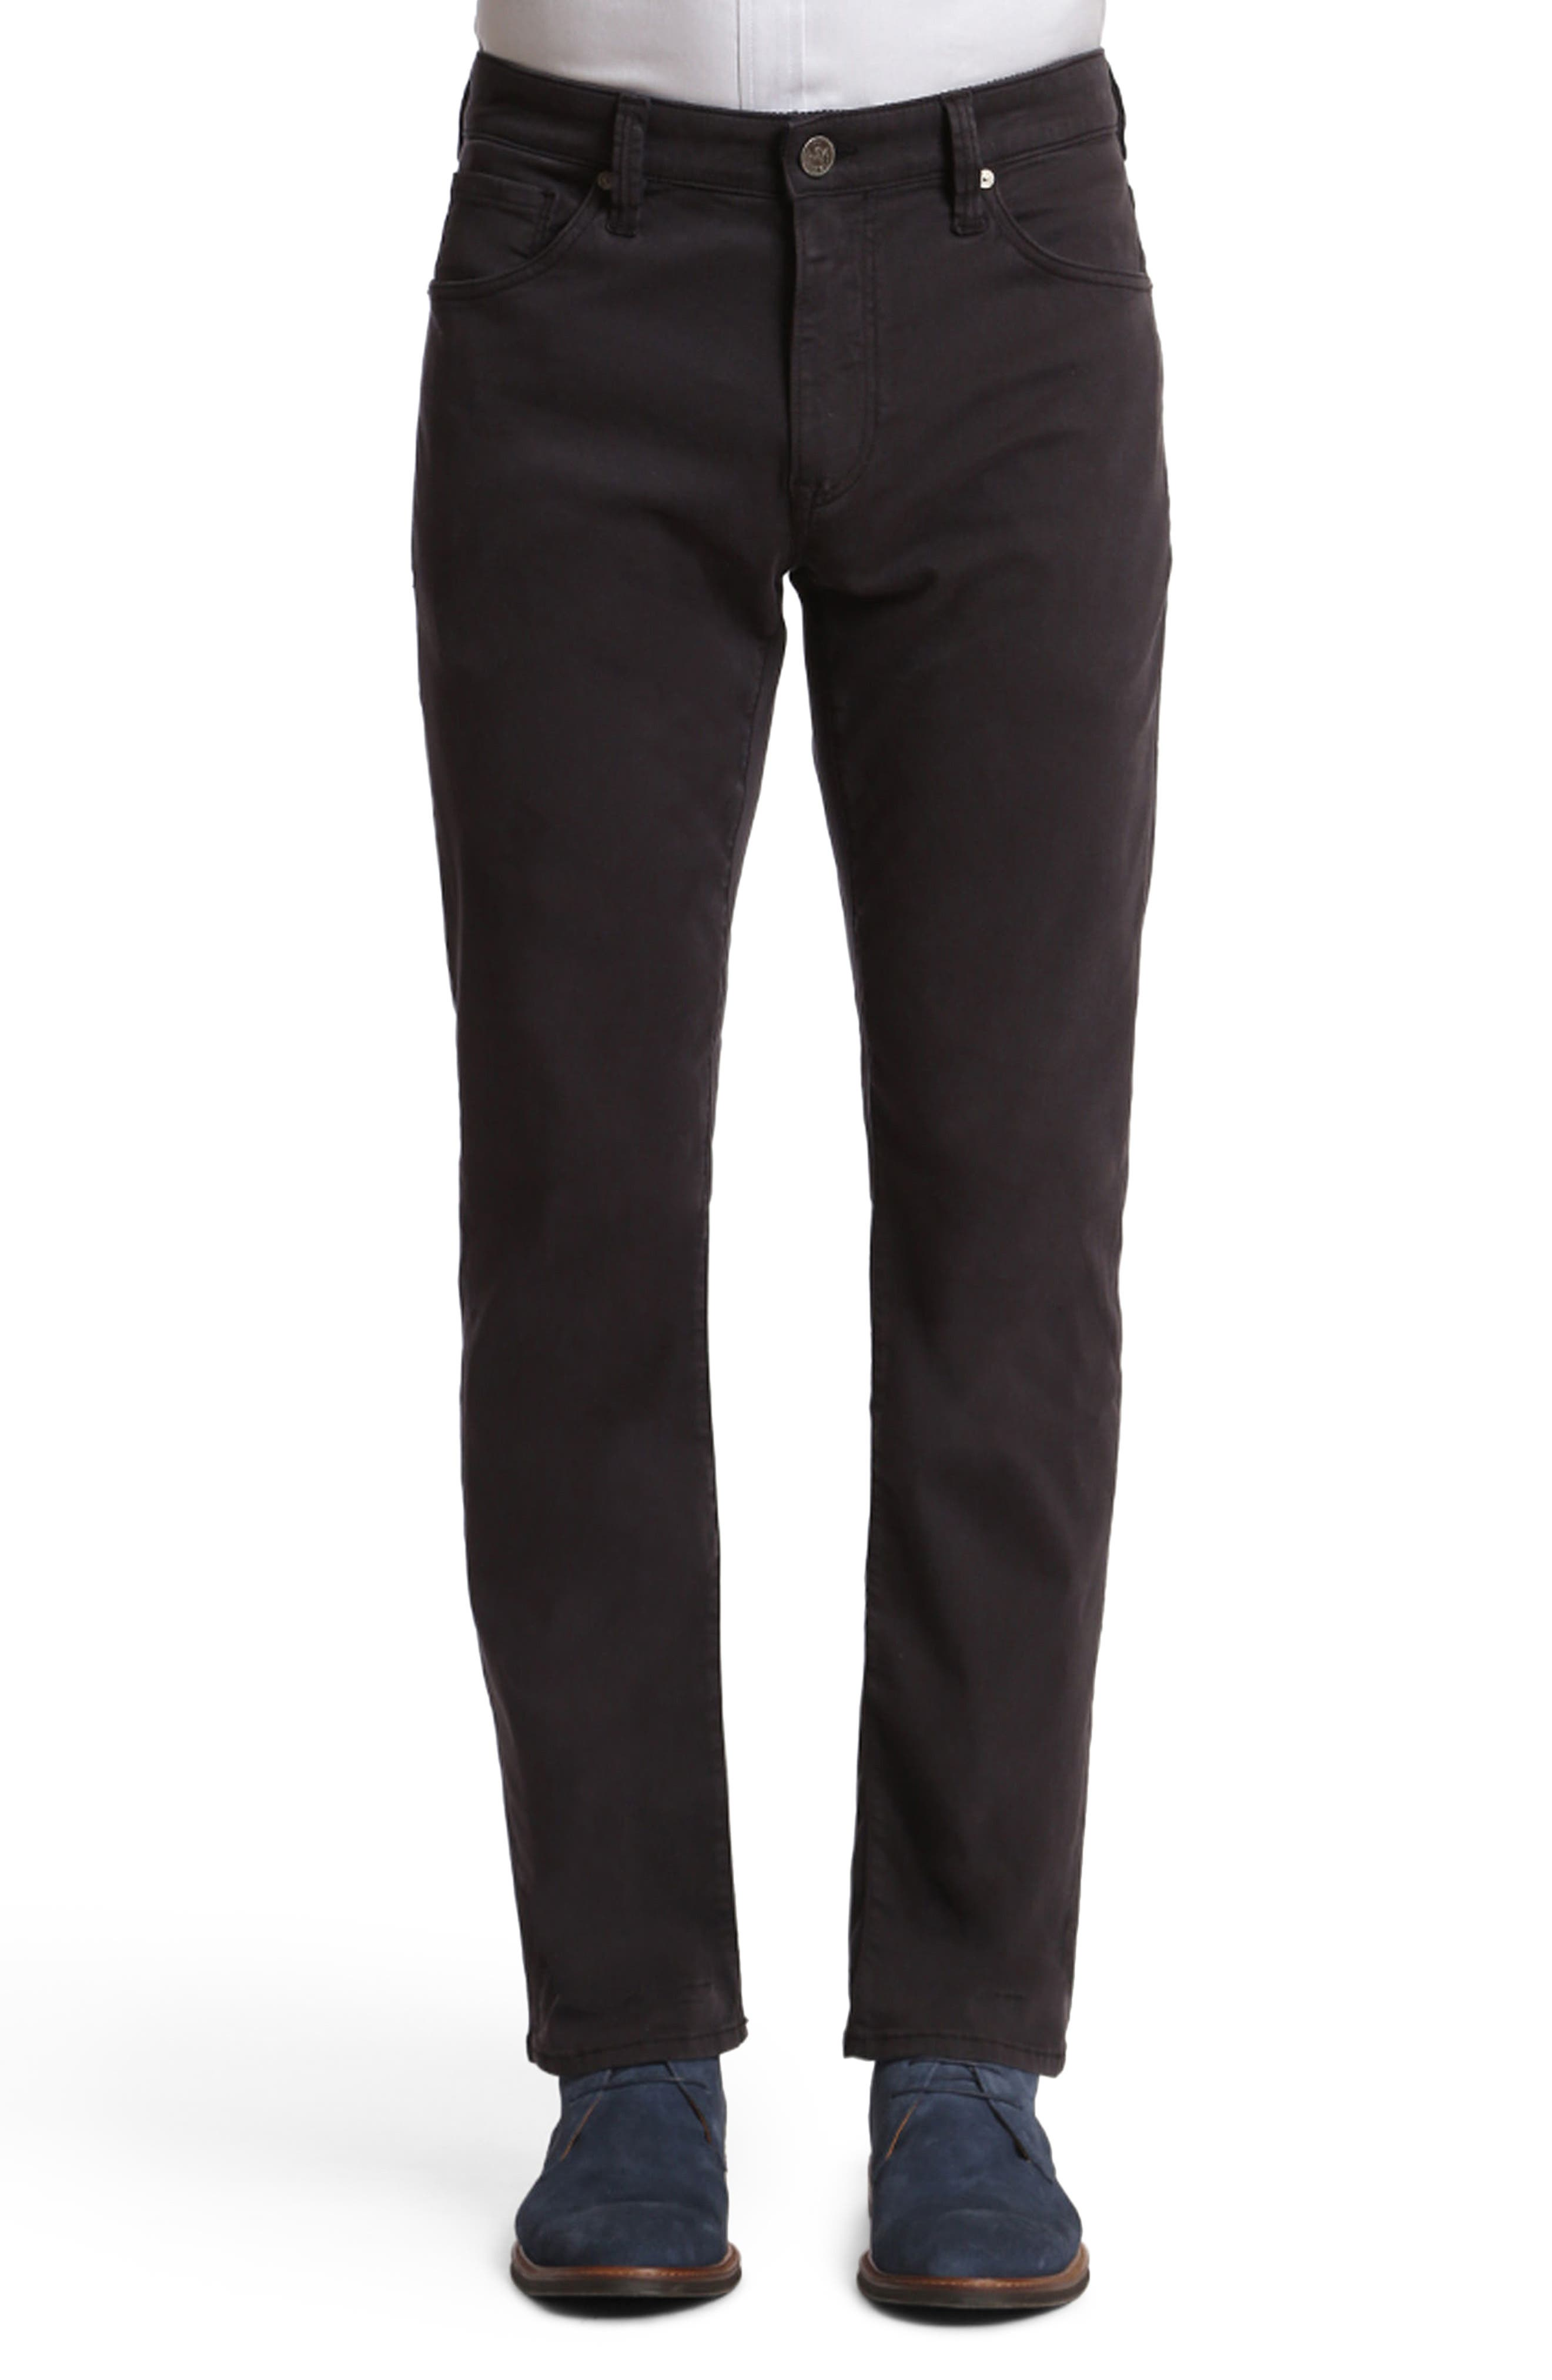 Courage Straight Leg Twill Pants,                         Main,                         color, Blue-Grey Twill